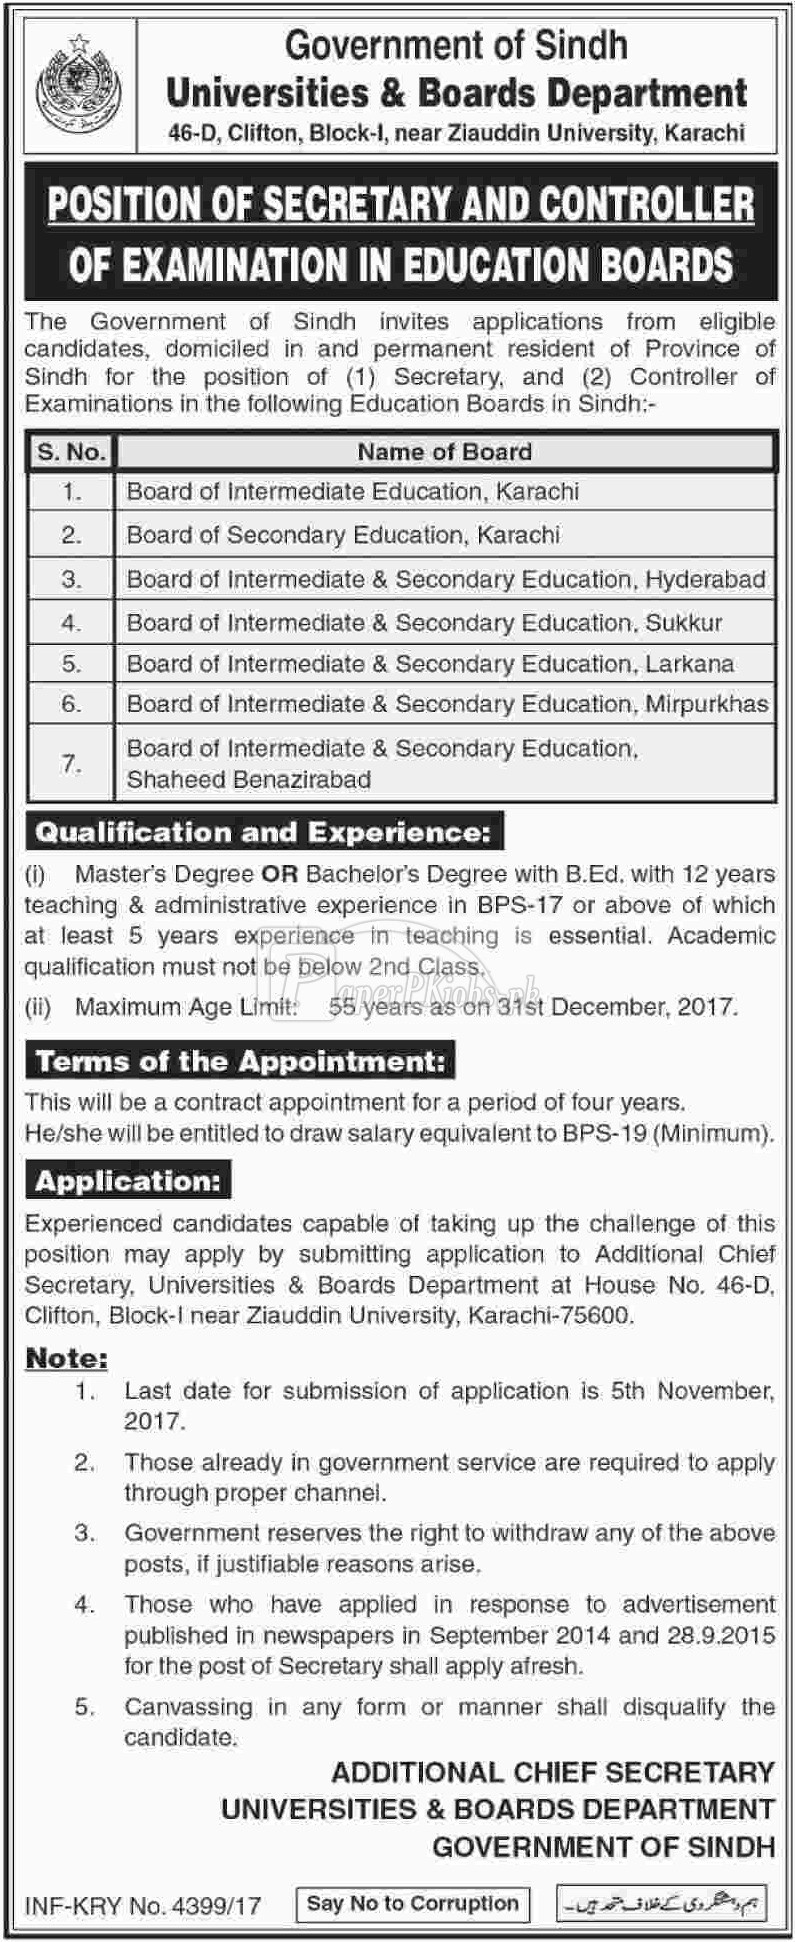 Universities & Boards Department Government of Sindh Jobs 2017